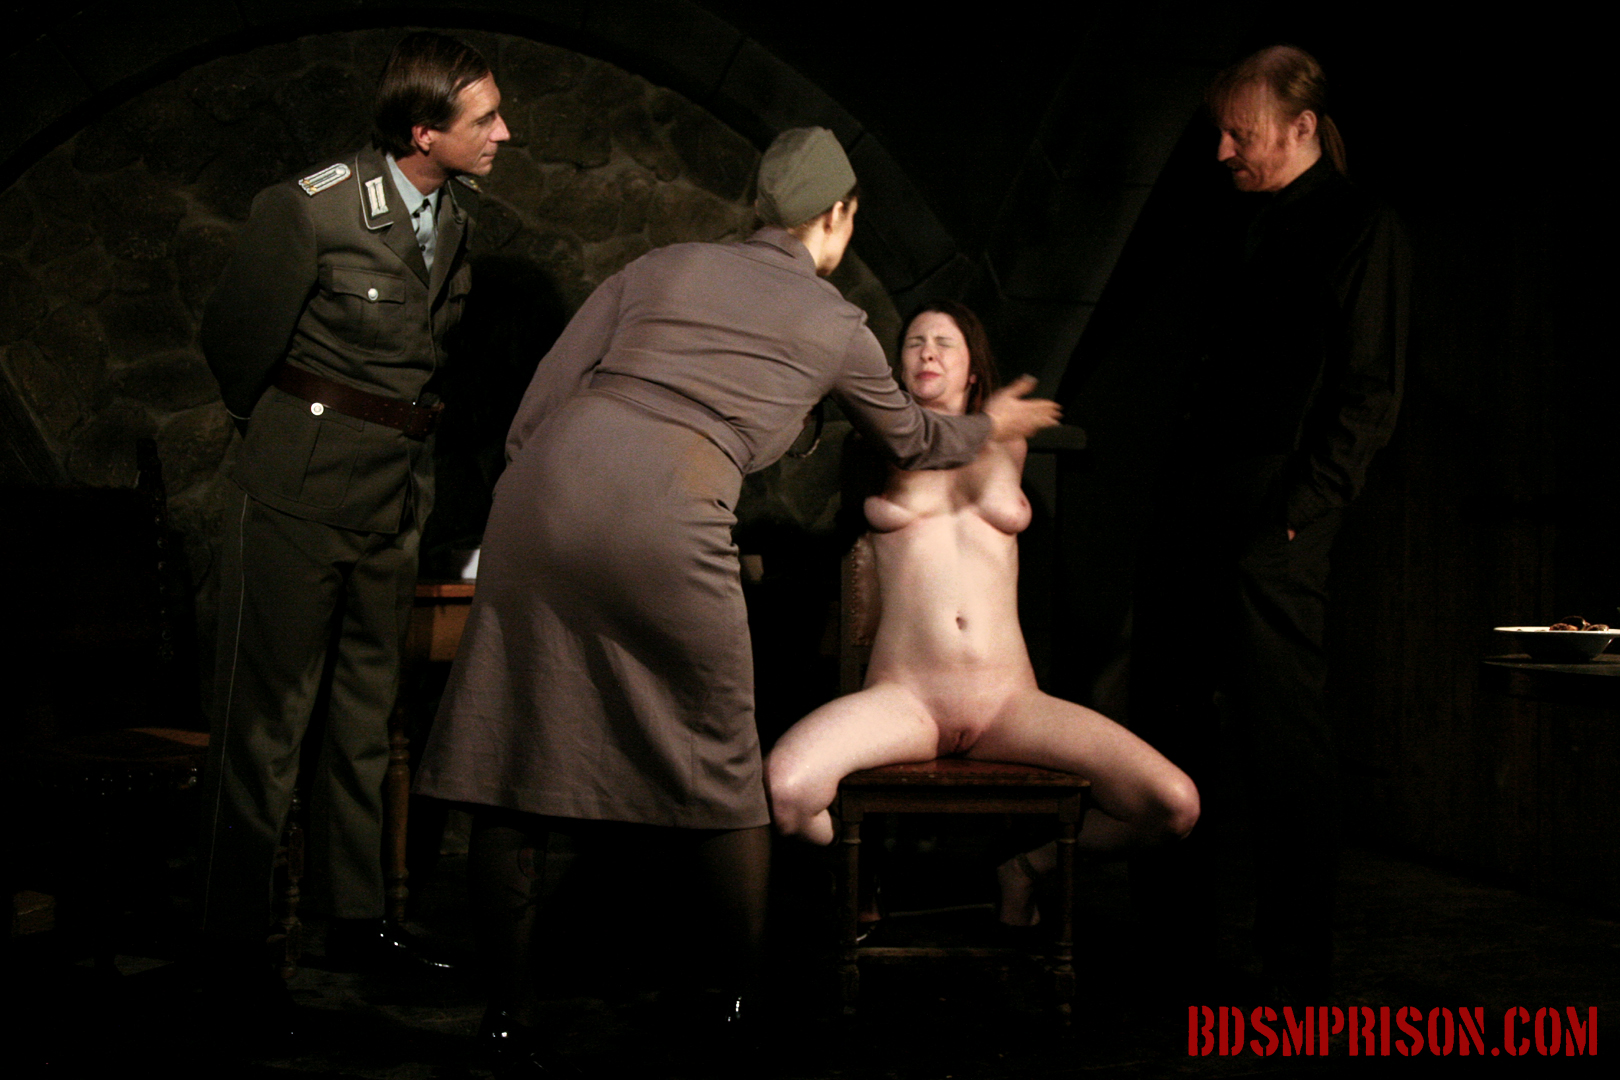 Sophie domination bondage cunt and nipple molested. Sophie is a betting loser and has amounted quite a debt. So Sophie is imprisoned in the Institute for punishment. Two prison guards and BDSM Major Marcowicz joins the night for her pleasure. Sophie will endure domination, bondage, breast, kitty and nipple torture with clamps, intense spanking, whipping and smacking on her thighs, tits and face, humiliation, sex toys, nipple weights. She has to smile the entire time, every slap.